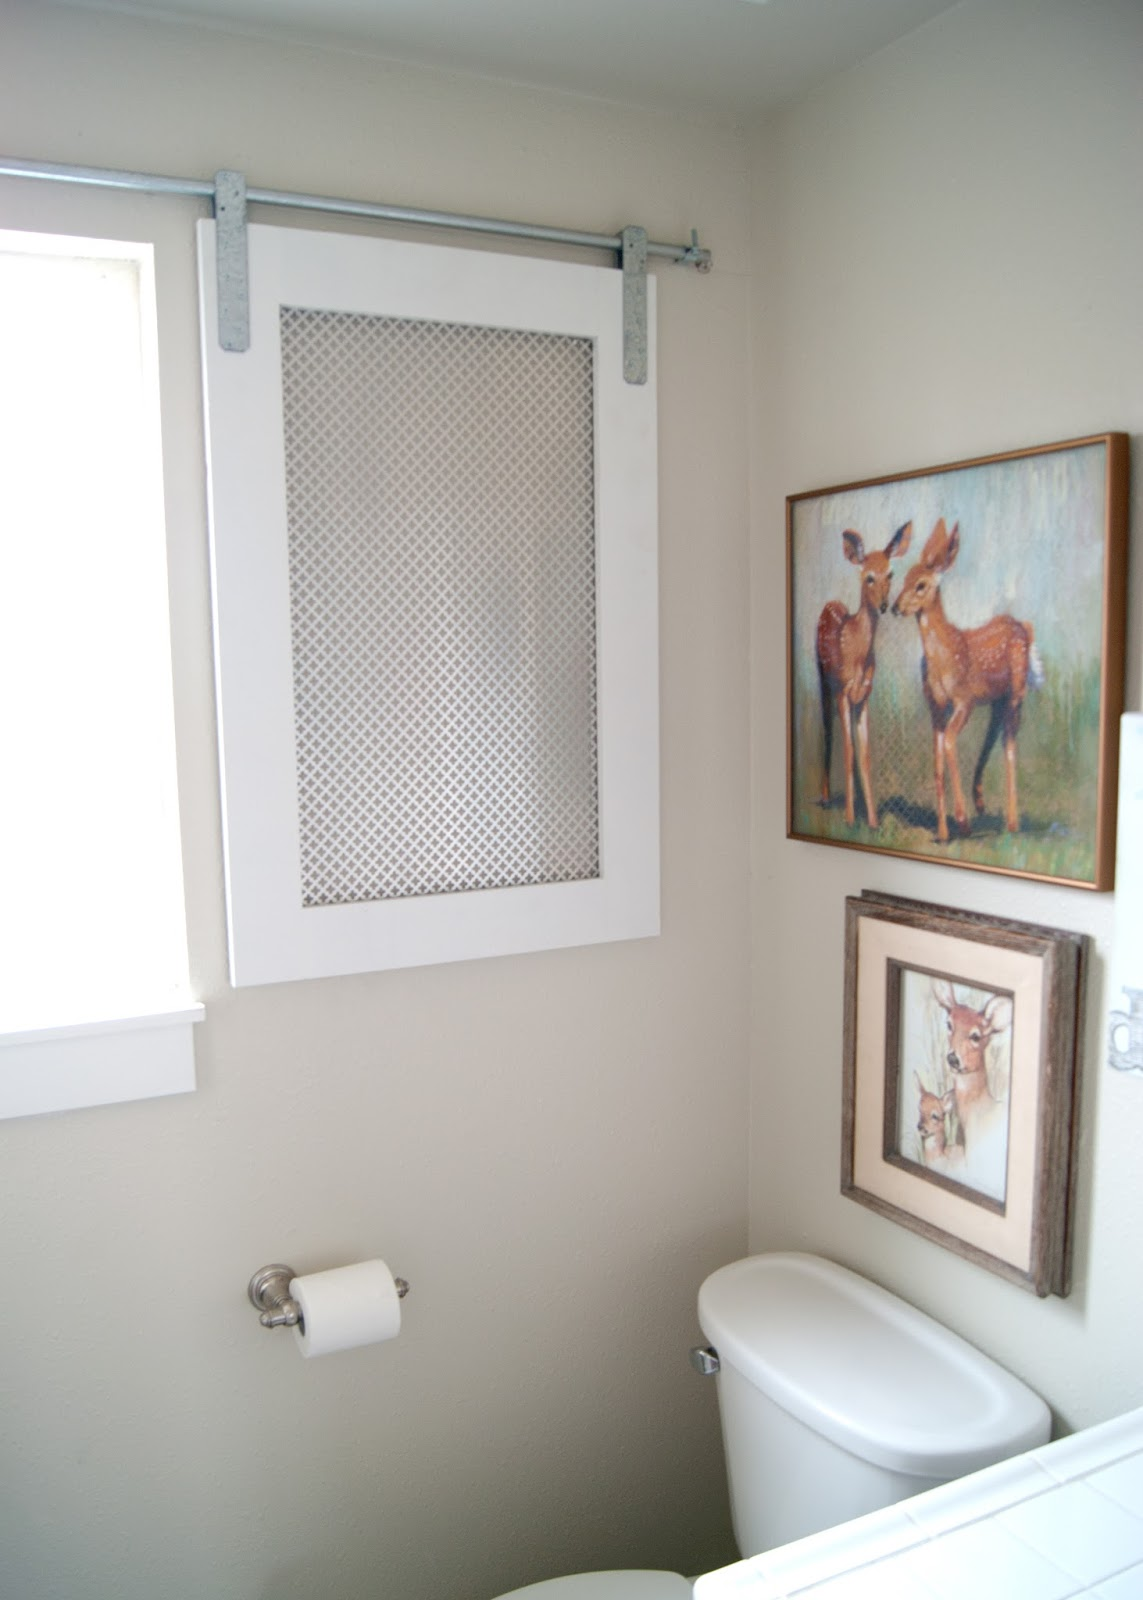 DIY Barn Door Window Cover for the Bathroom - after